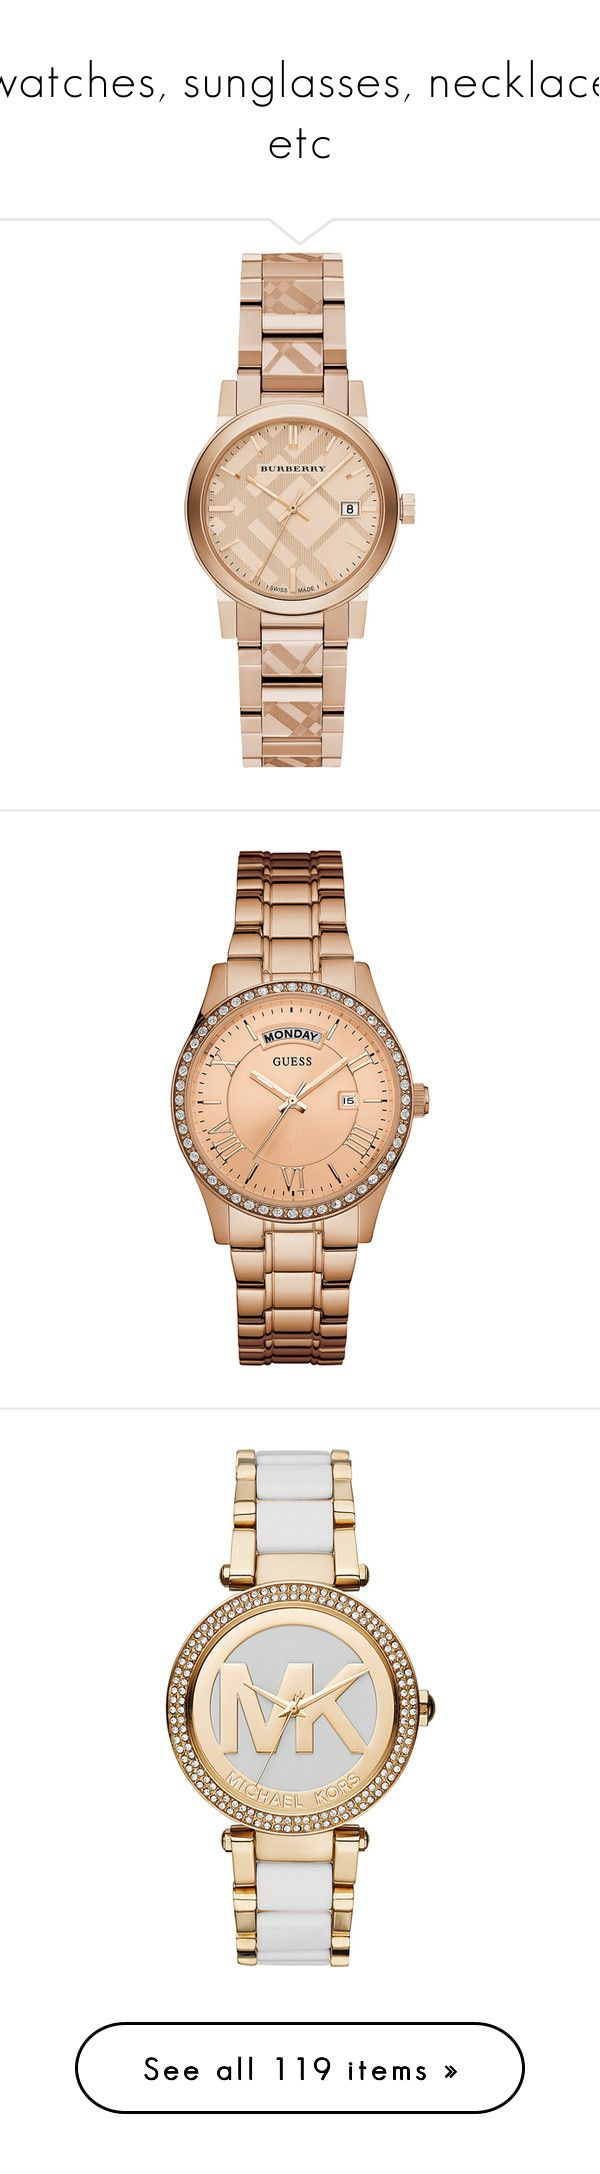 """watches, sunglasses, necklace etc"" by chanelesmith51167 ❤ liked on Polyvore featuring jewelry, watches, accessories, bracelets, relojes, burberry jewelry, red gold jewelry, rose jewellery, dial watches and burberry"